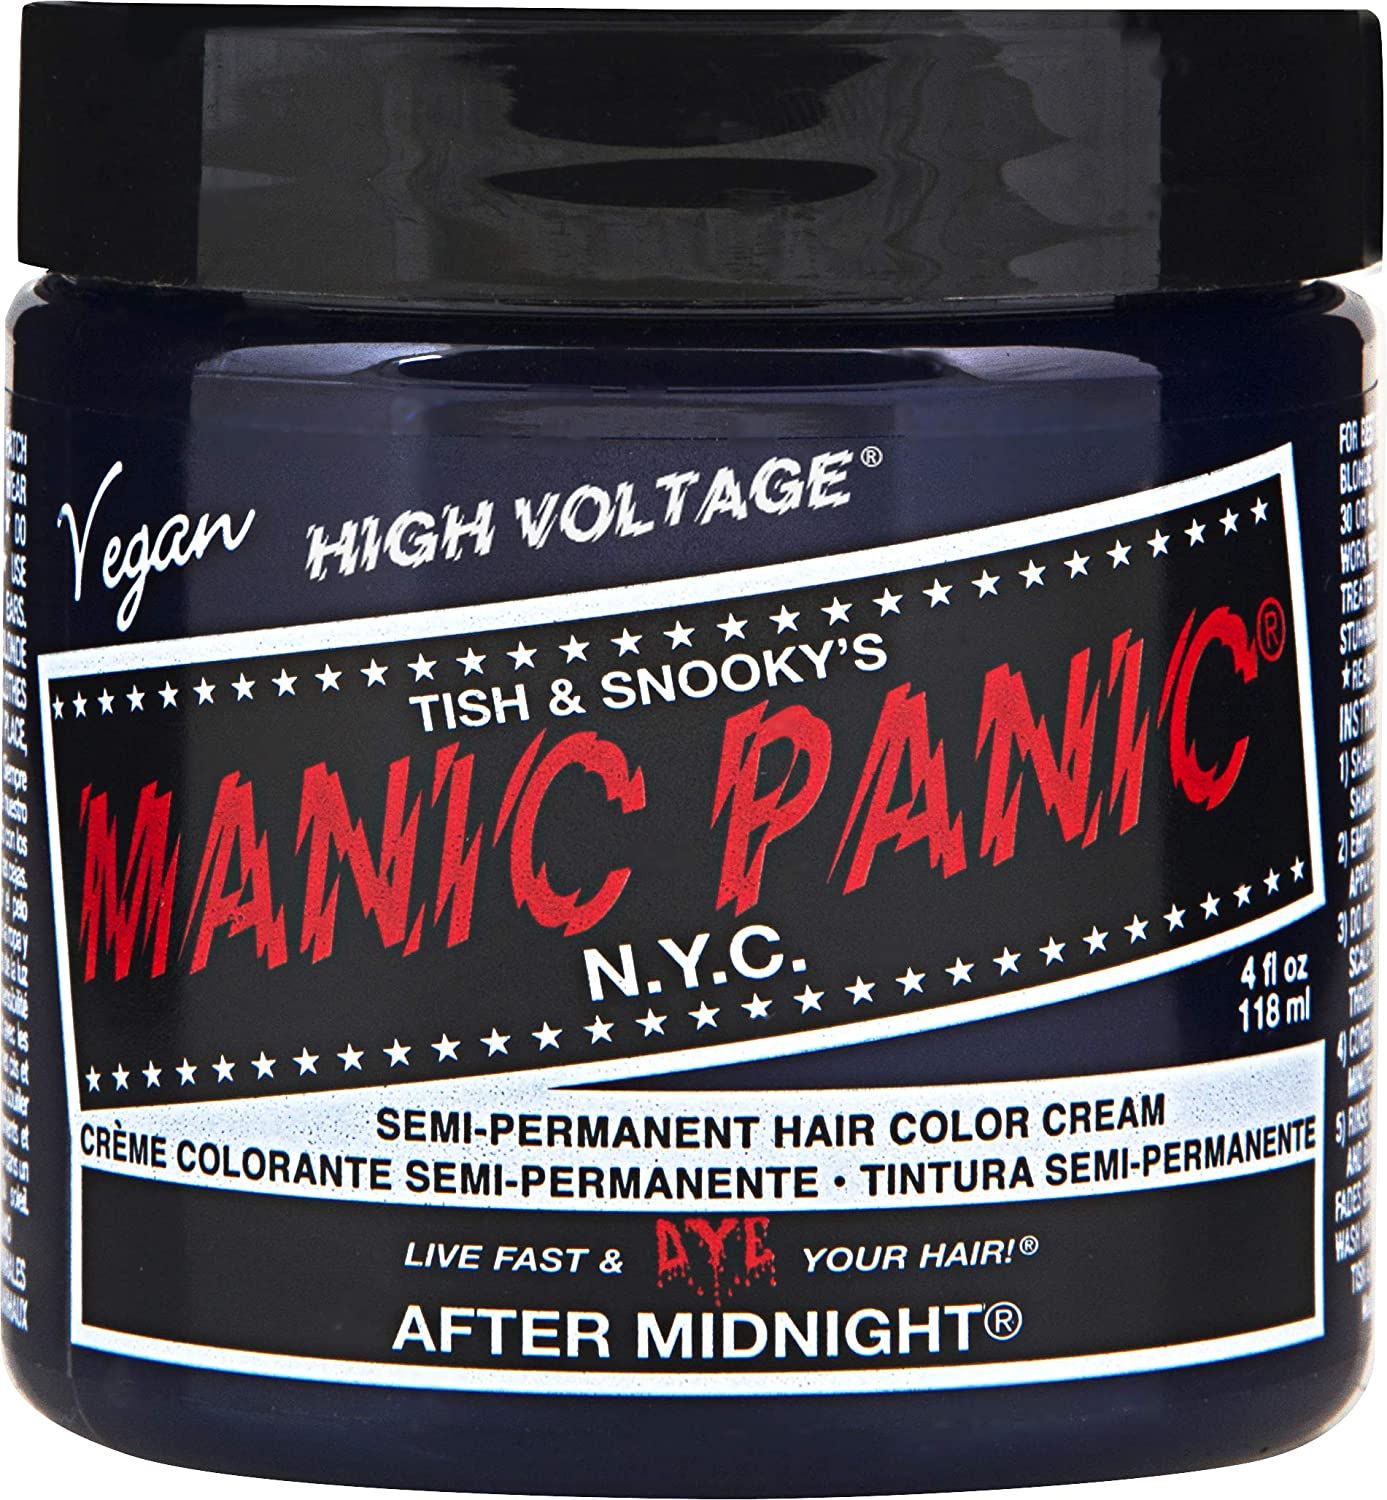 manic panic hair dye: black container